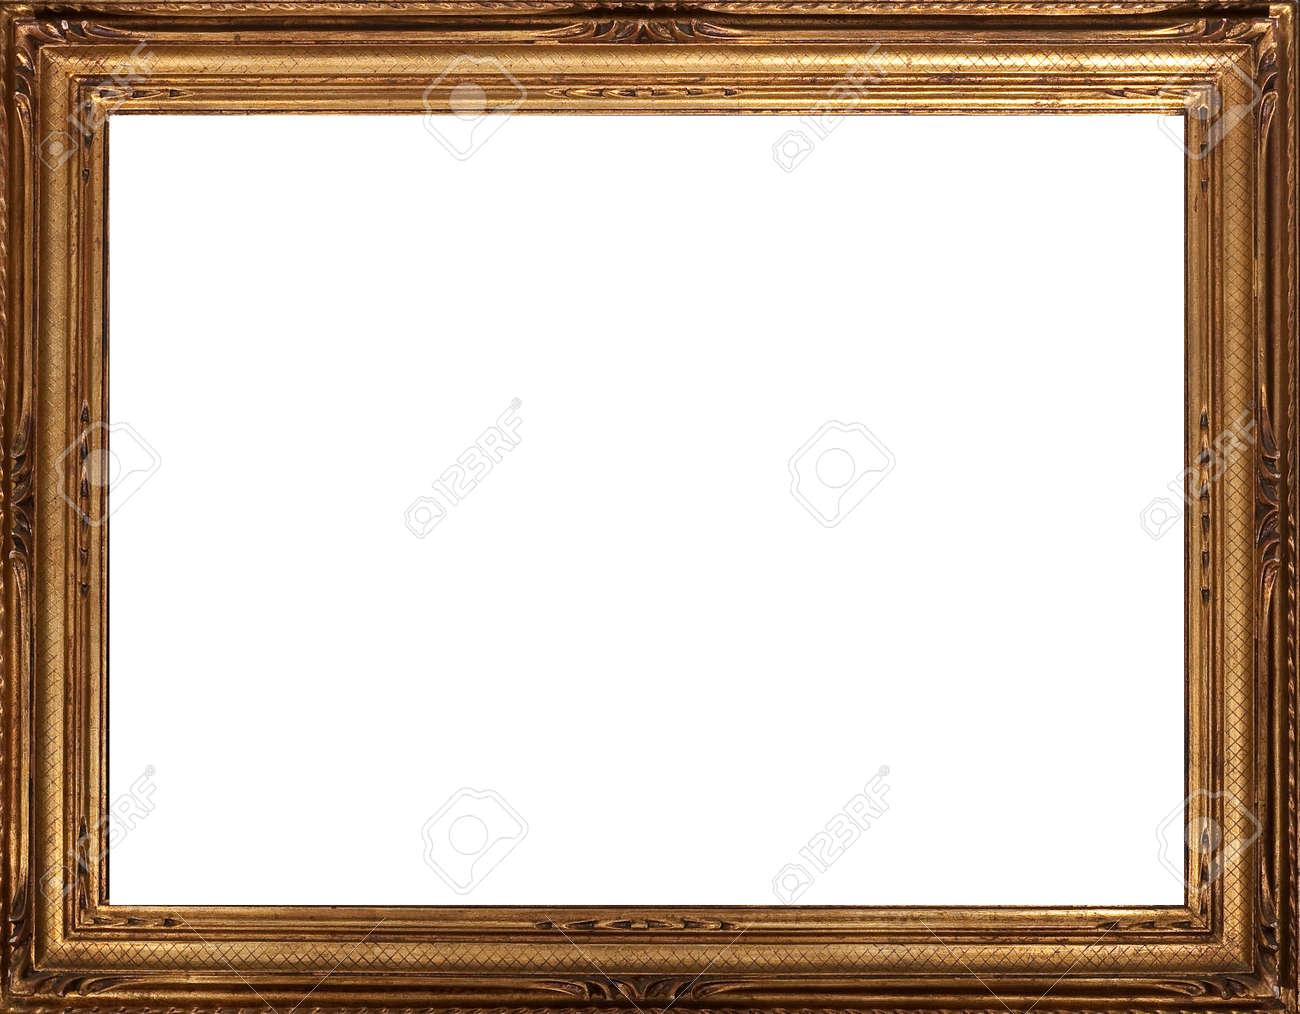 Old Style Wooden Golden Painting Frame Stock Photo, Picture And ...